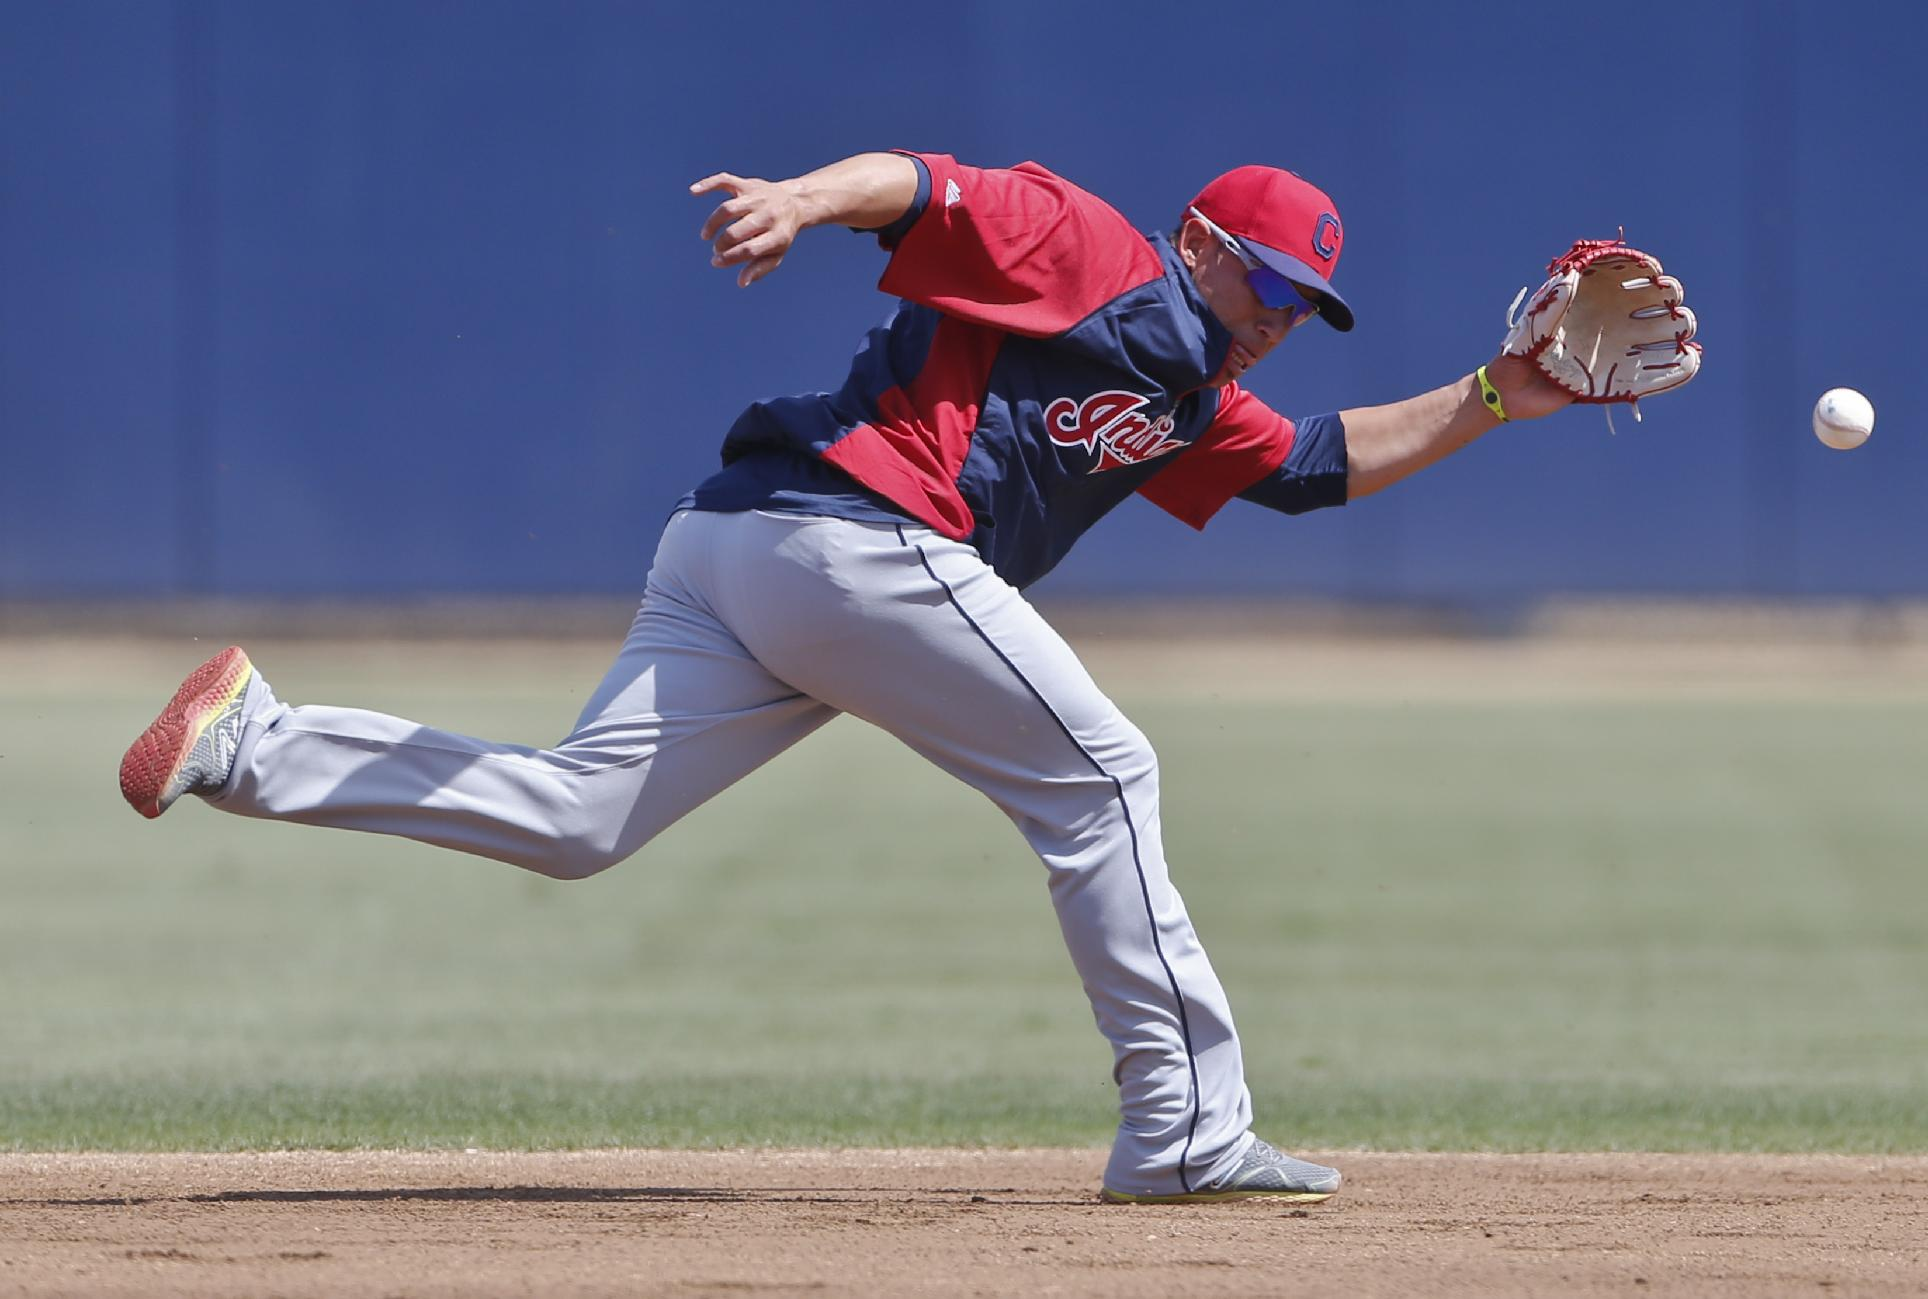 Cleveland Indians shortstop Asdrubal Cabrera goes after a ball behind second during fielding drills prior to a spring training exhibition baseball game  against the San Diego Padres Saturday, March 29, 2014, in San Diego